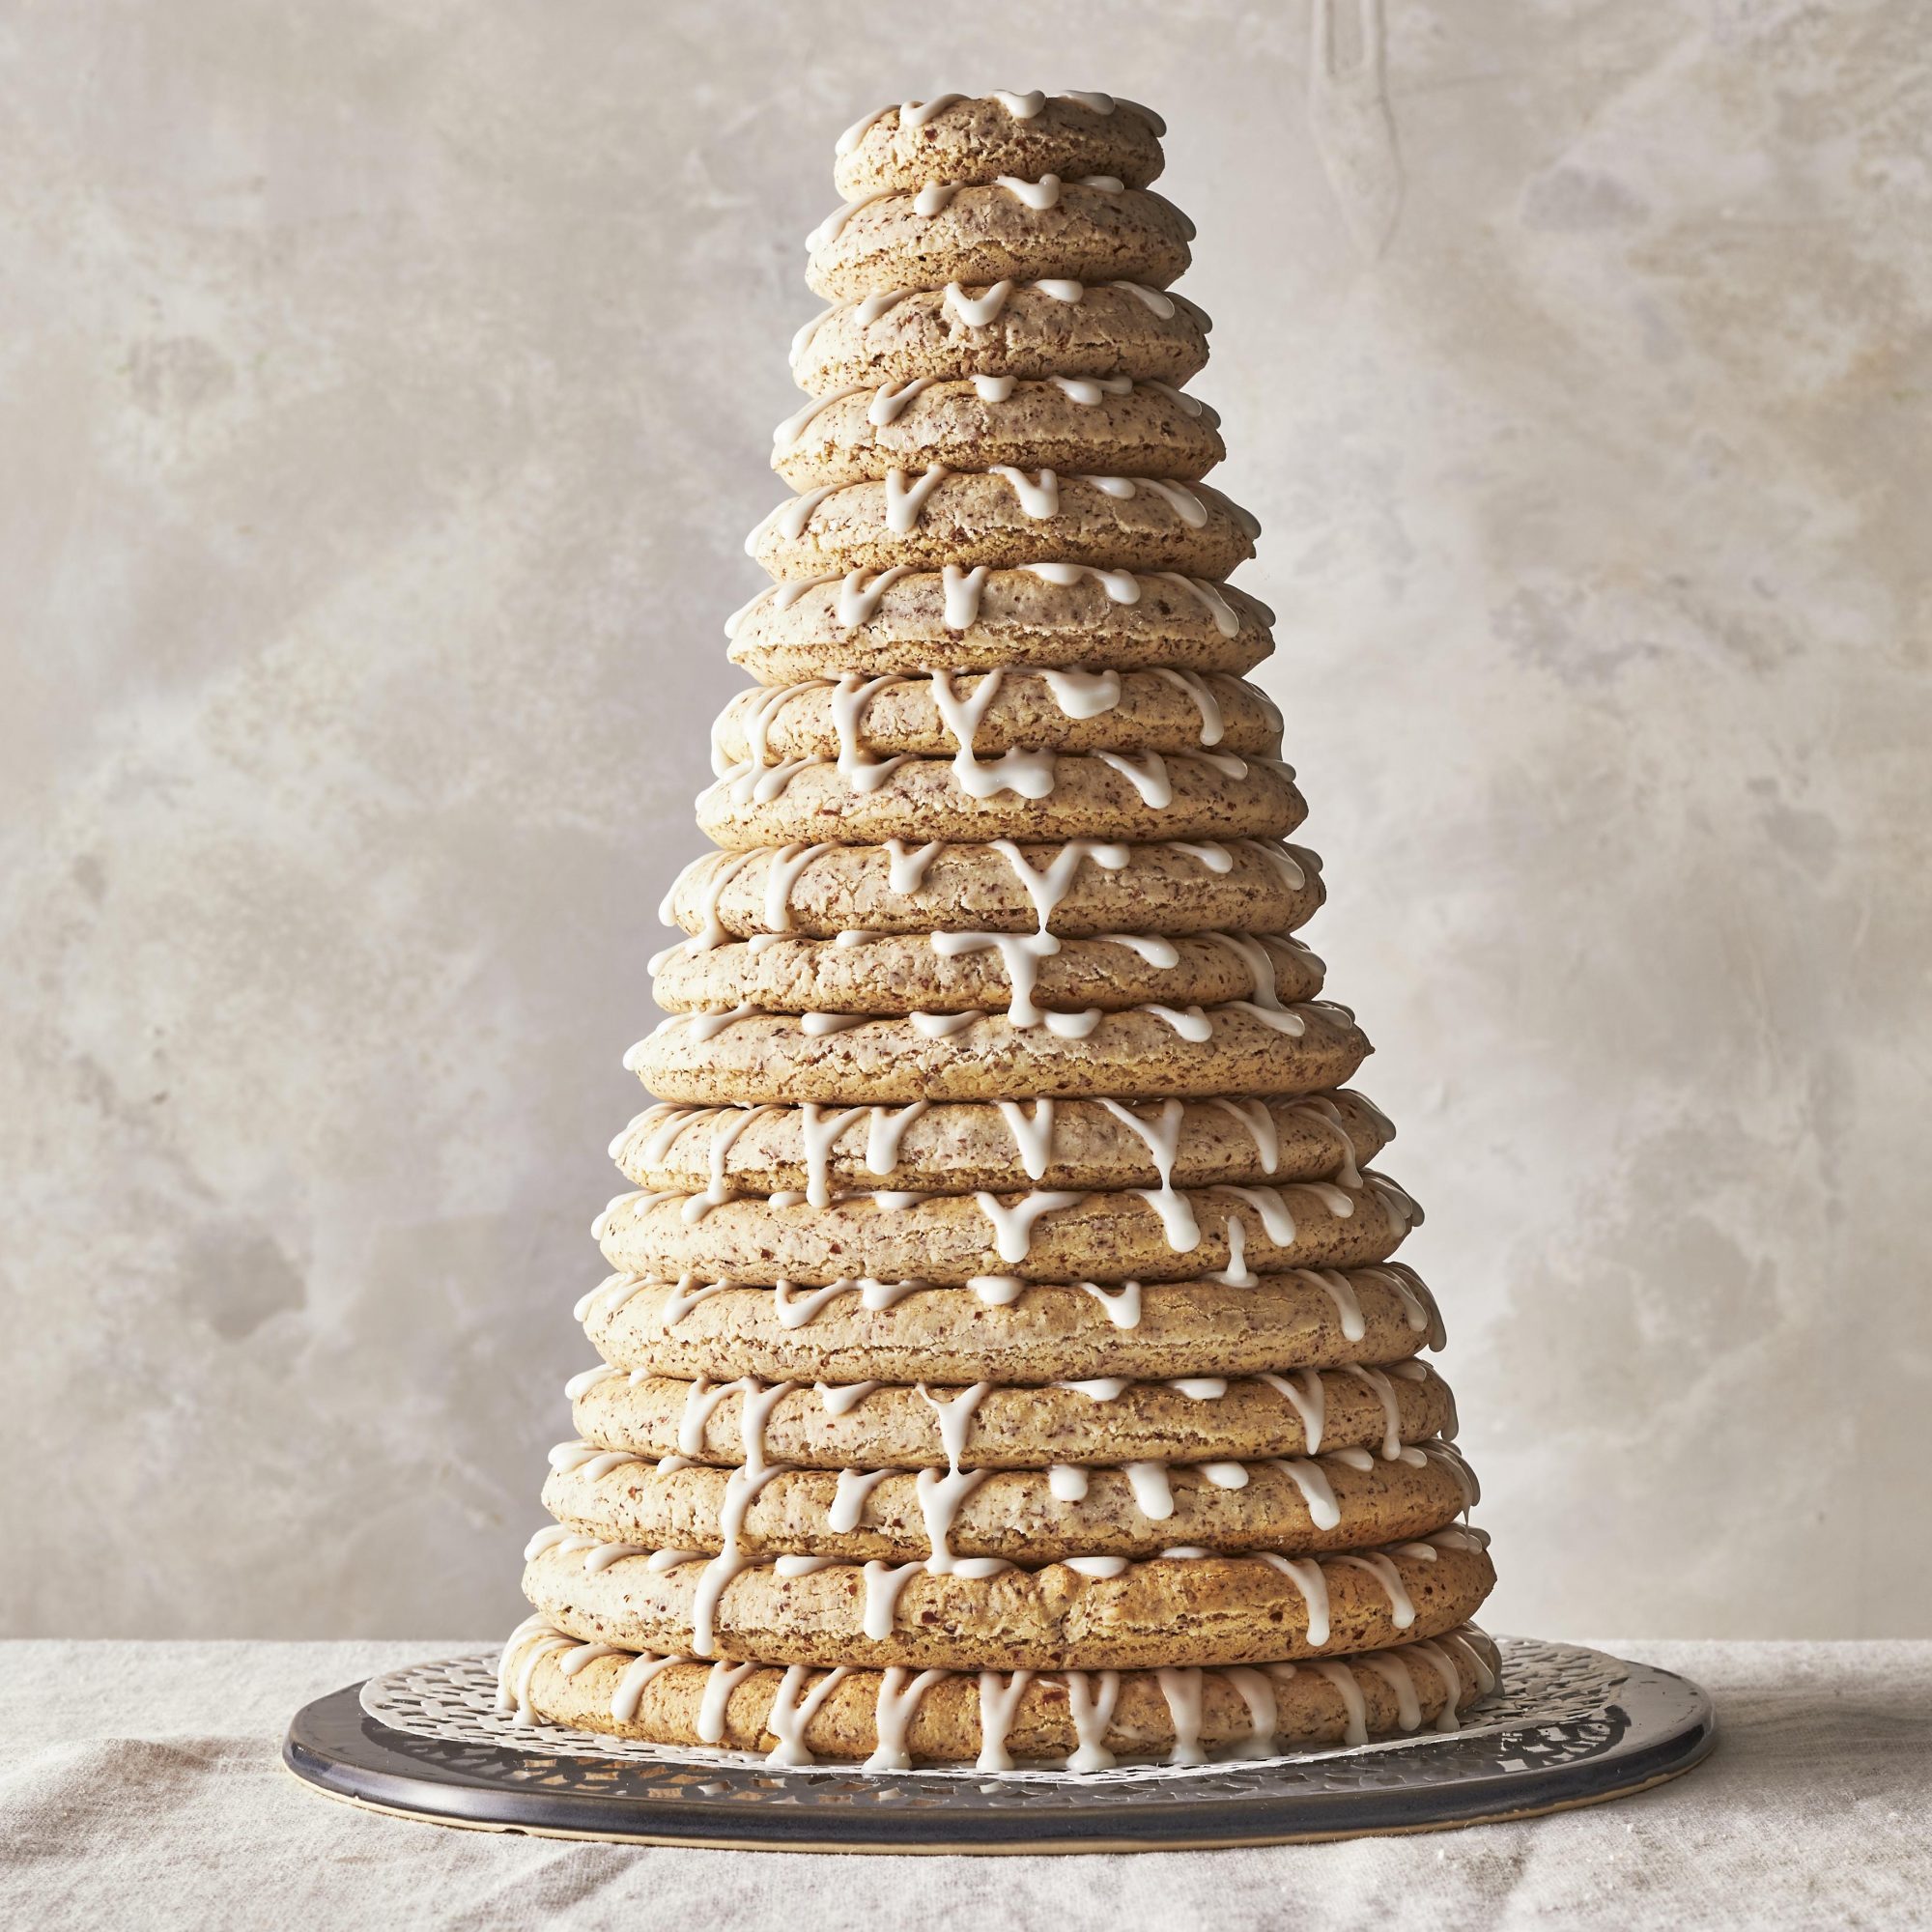 18 beautiful almond cookies, each drizzled with icing, and stacked to build a beautiful, towering, Kransekake (Norwegian Almond Ring Cake)